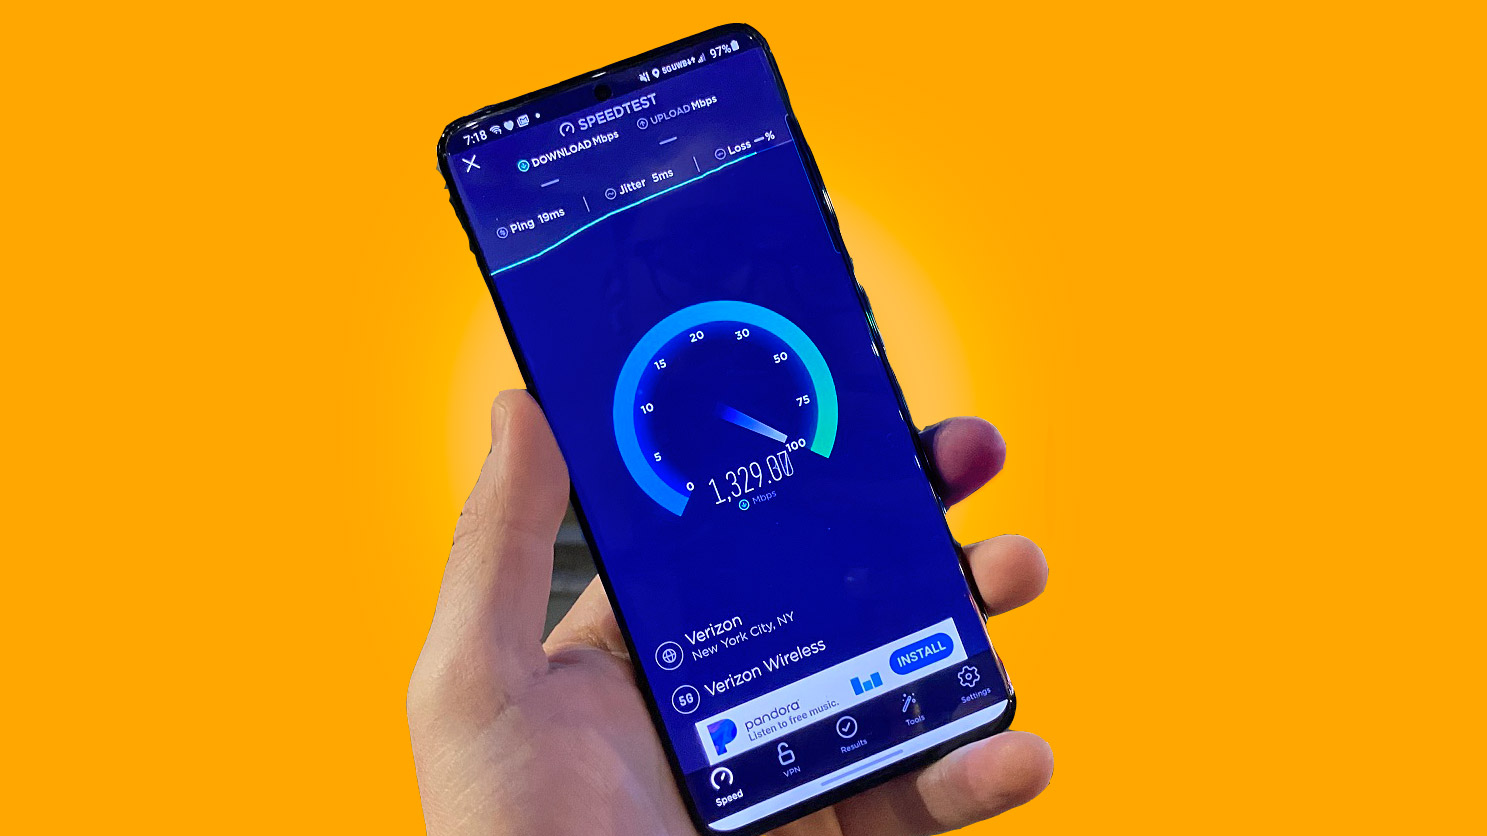 Best Moto Phone 2021 Best 5G phones 2020: the top handsets with next gen connectivity